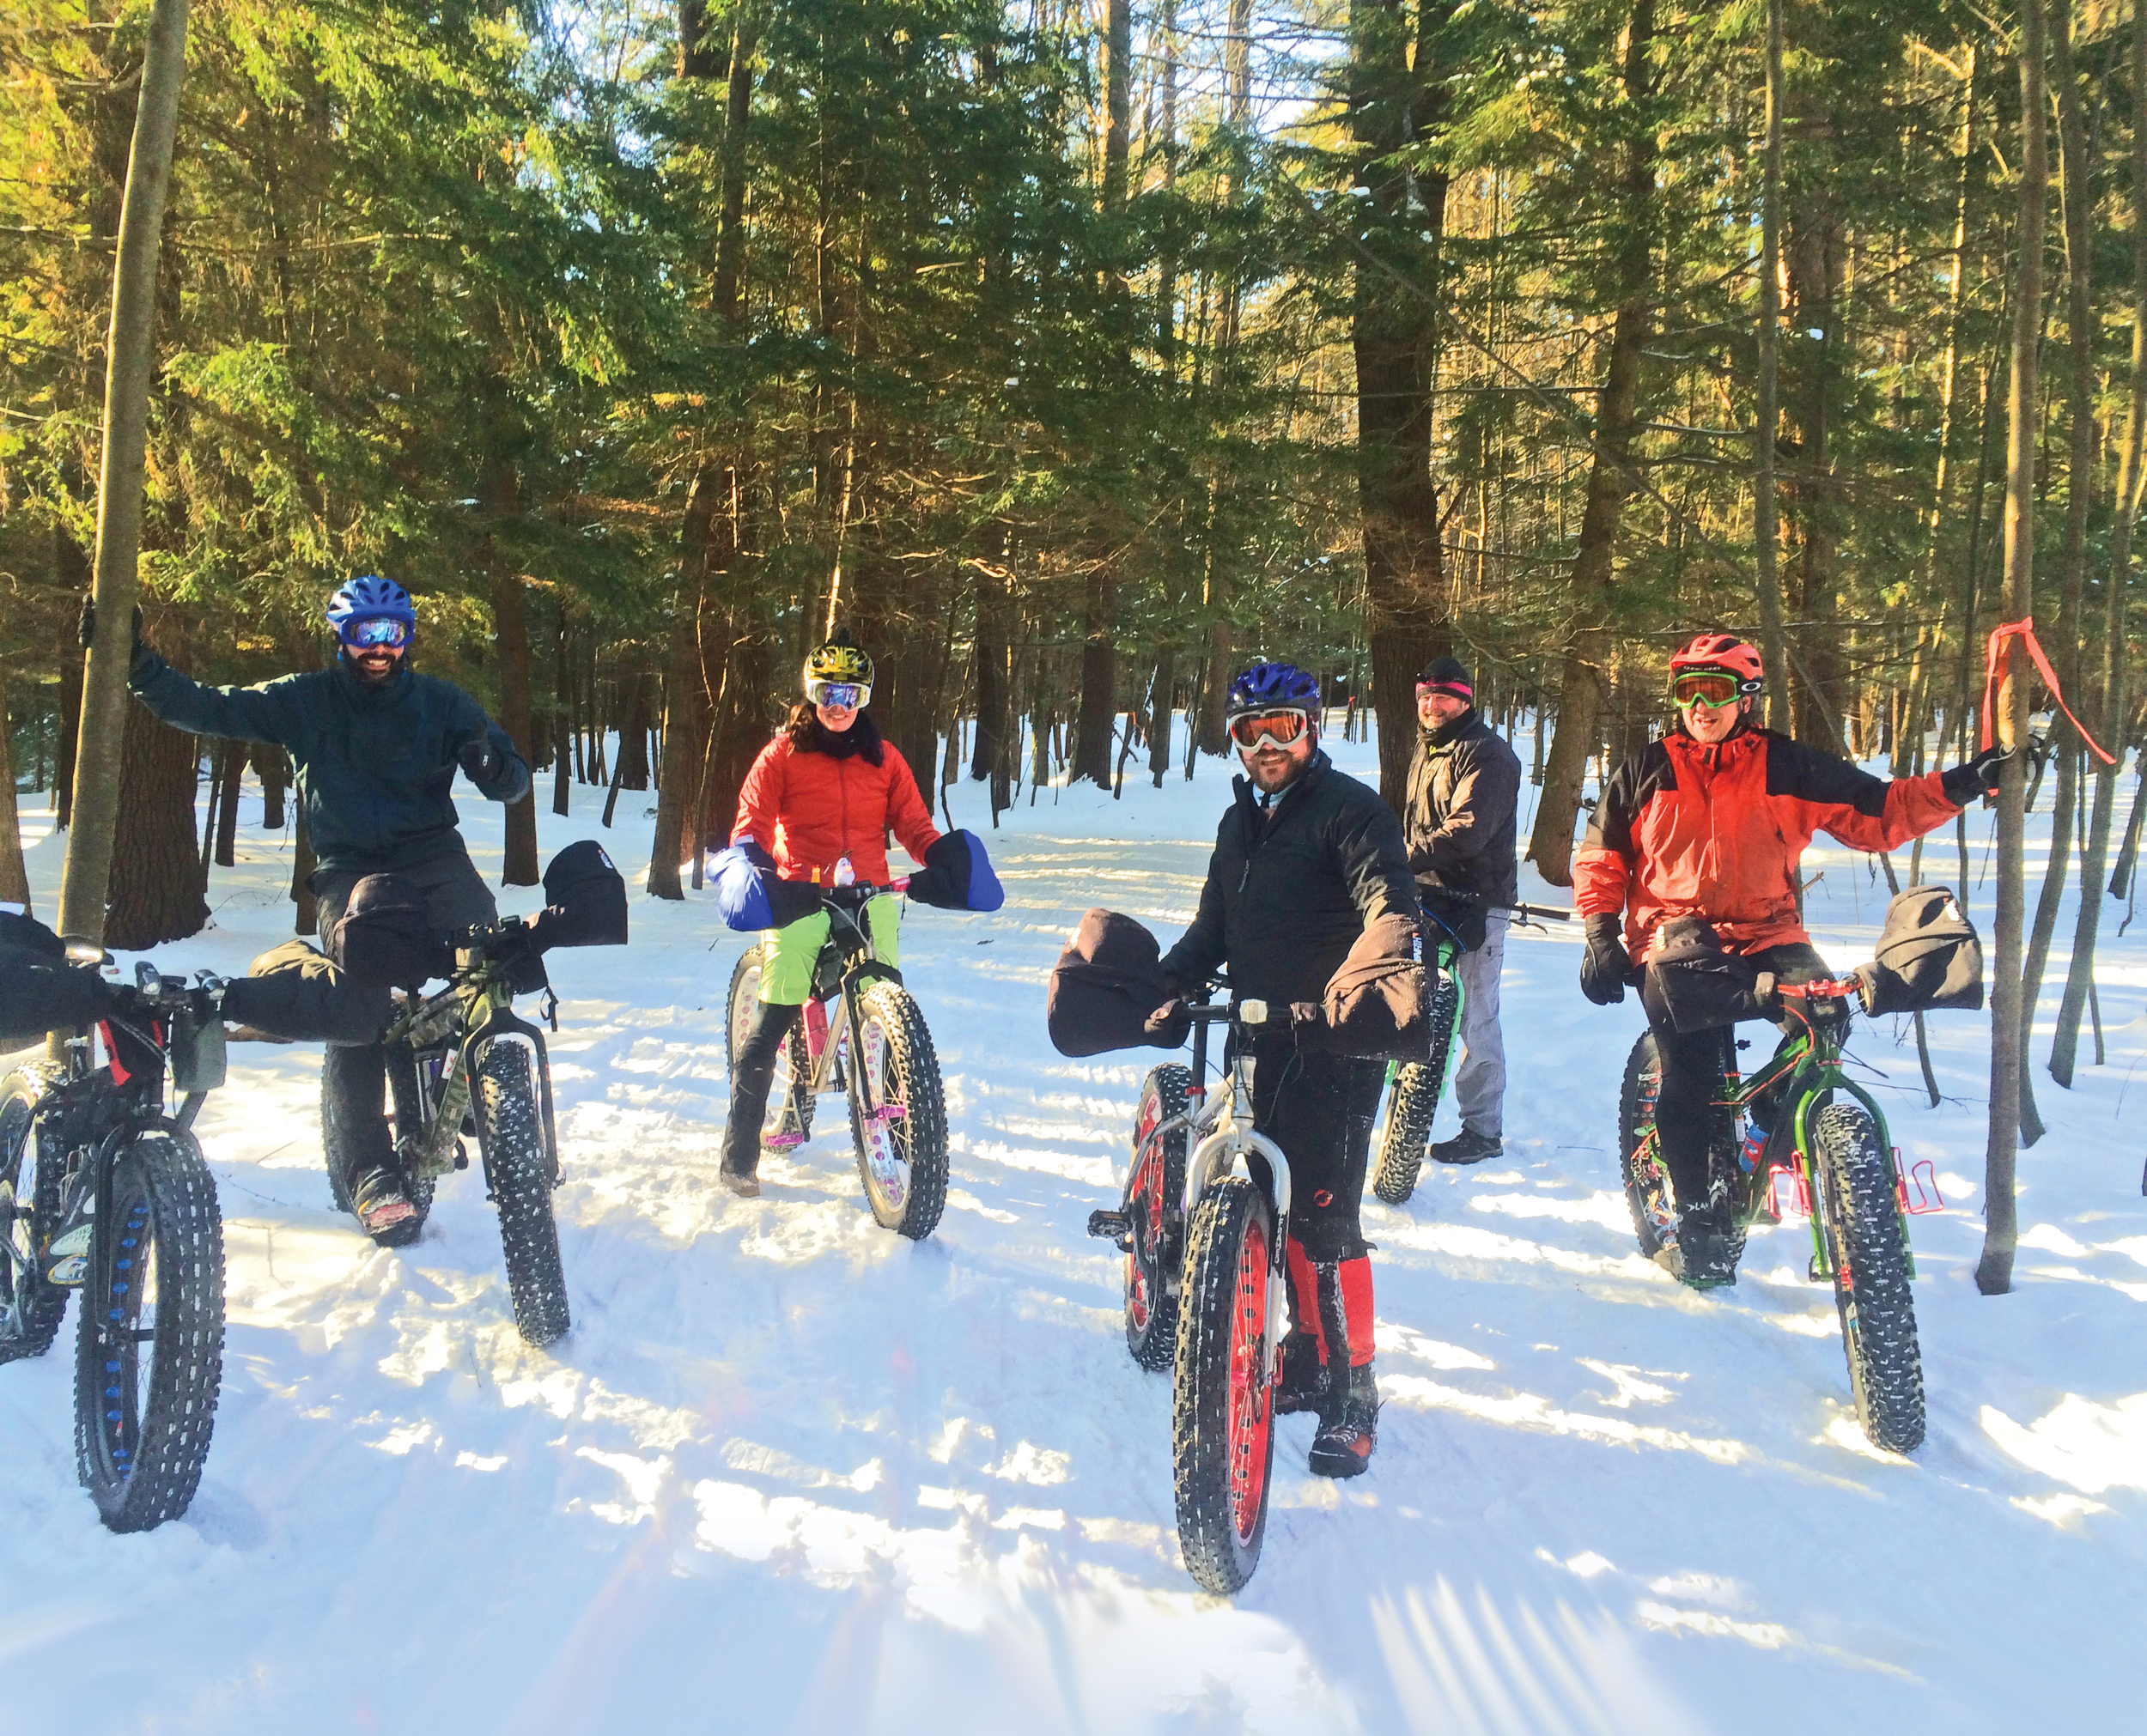 More smiles per mile: fat biking in the snow with friends at Saratoga Spa State Park in January 2015 – Jim Adams (Saratoga Springs), Janay Camp (Malta), Jesse Vollick (Rensselaer), Michael Feldman (Benson) and Anthony Ferradino (Schuylerville).  Photo by Shawne Camp